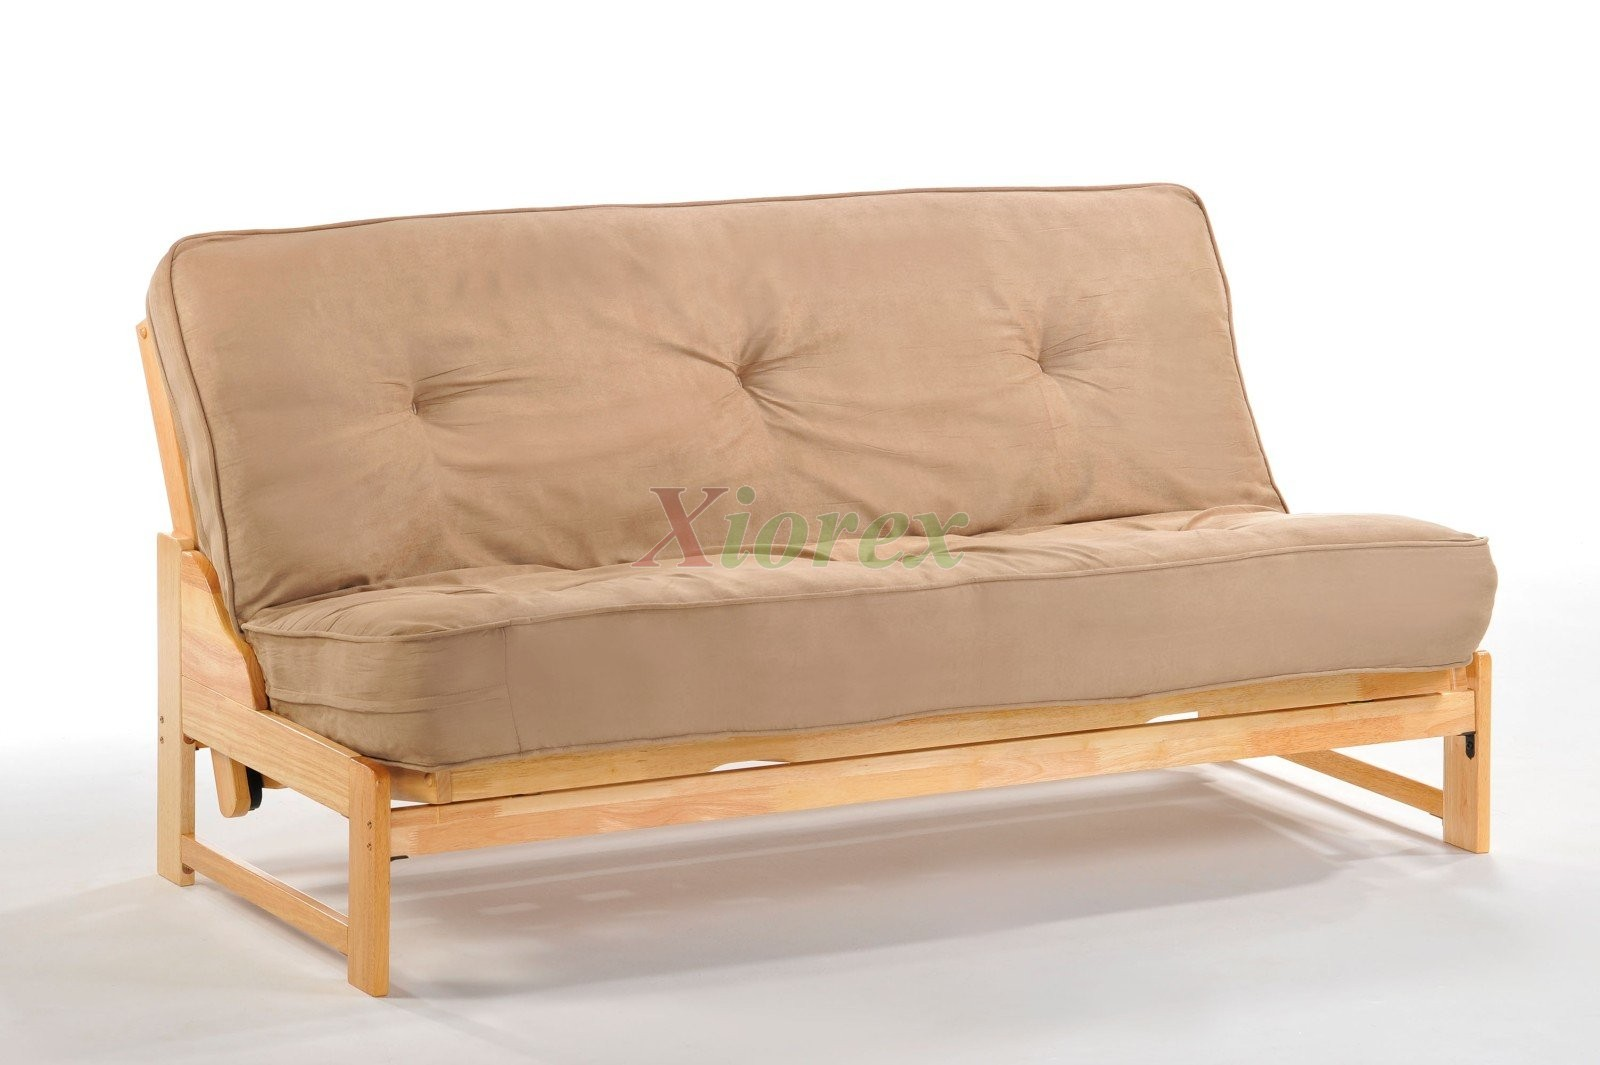 Futon Queen Size Bed